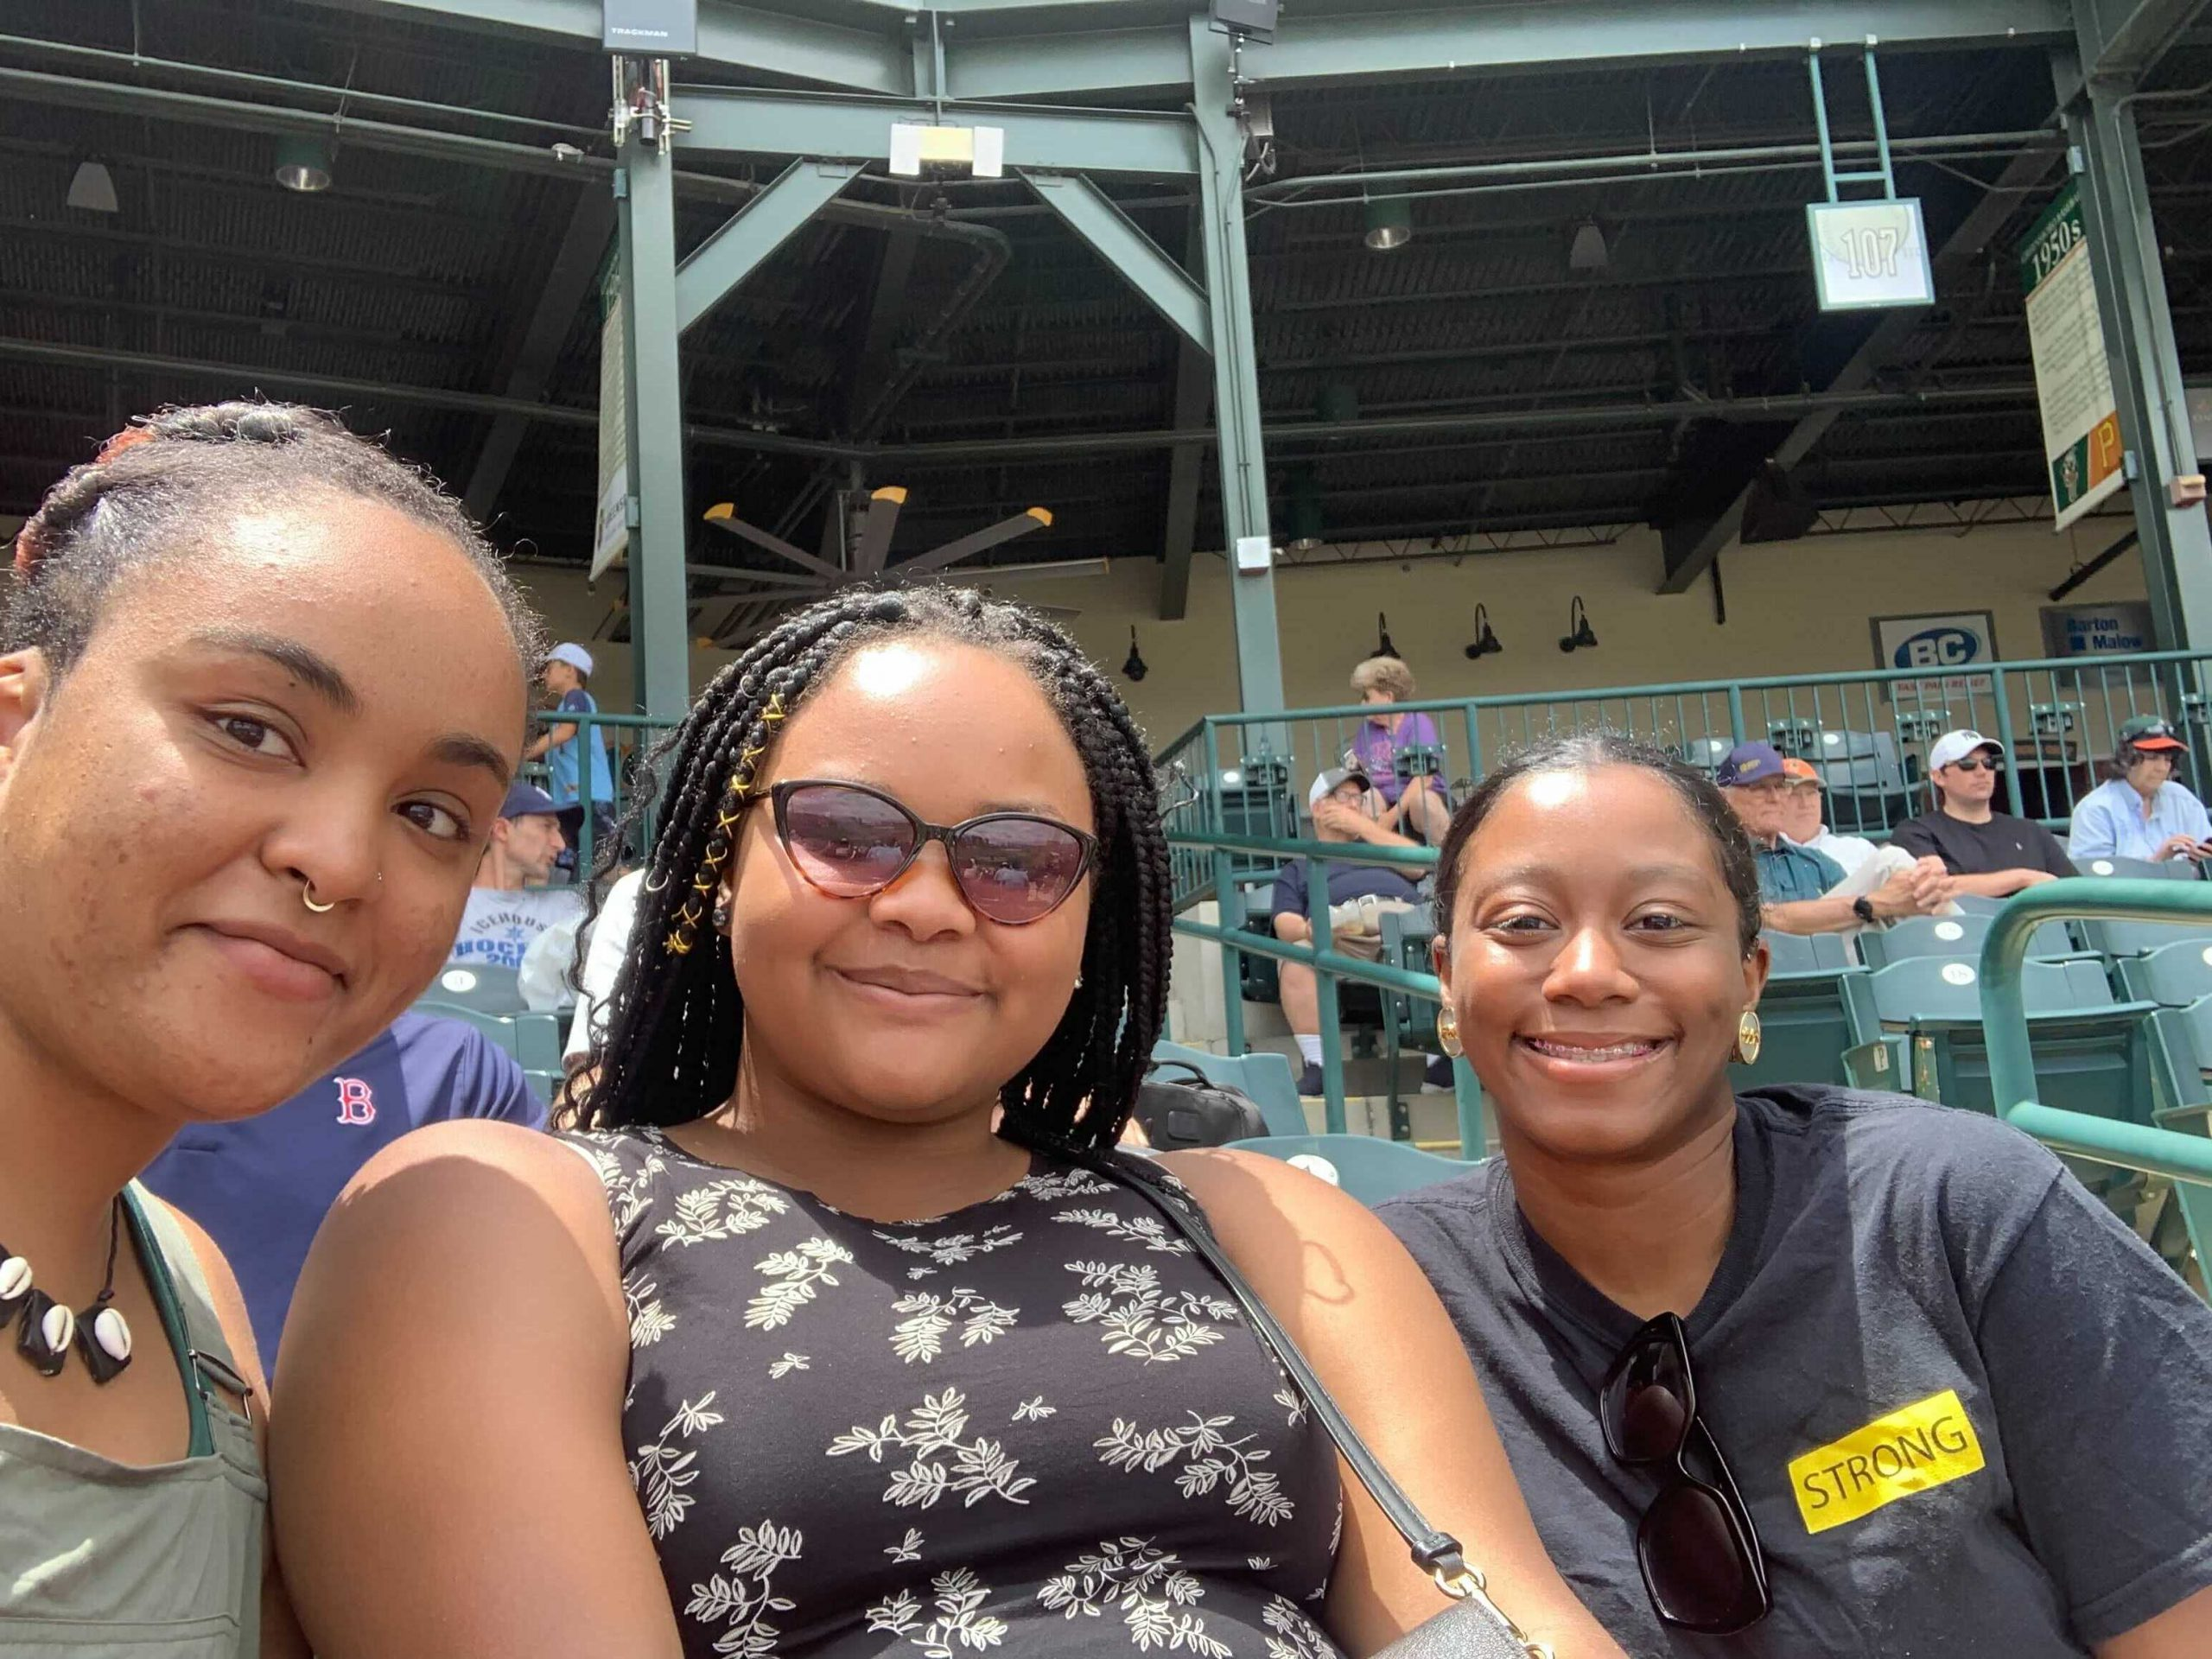 Three young Black women seated in a baseball stadium, taking a group selfie and smiling